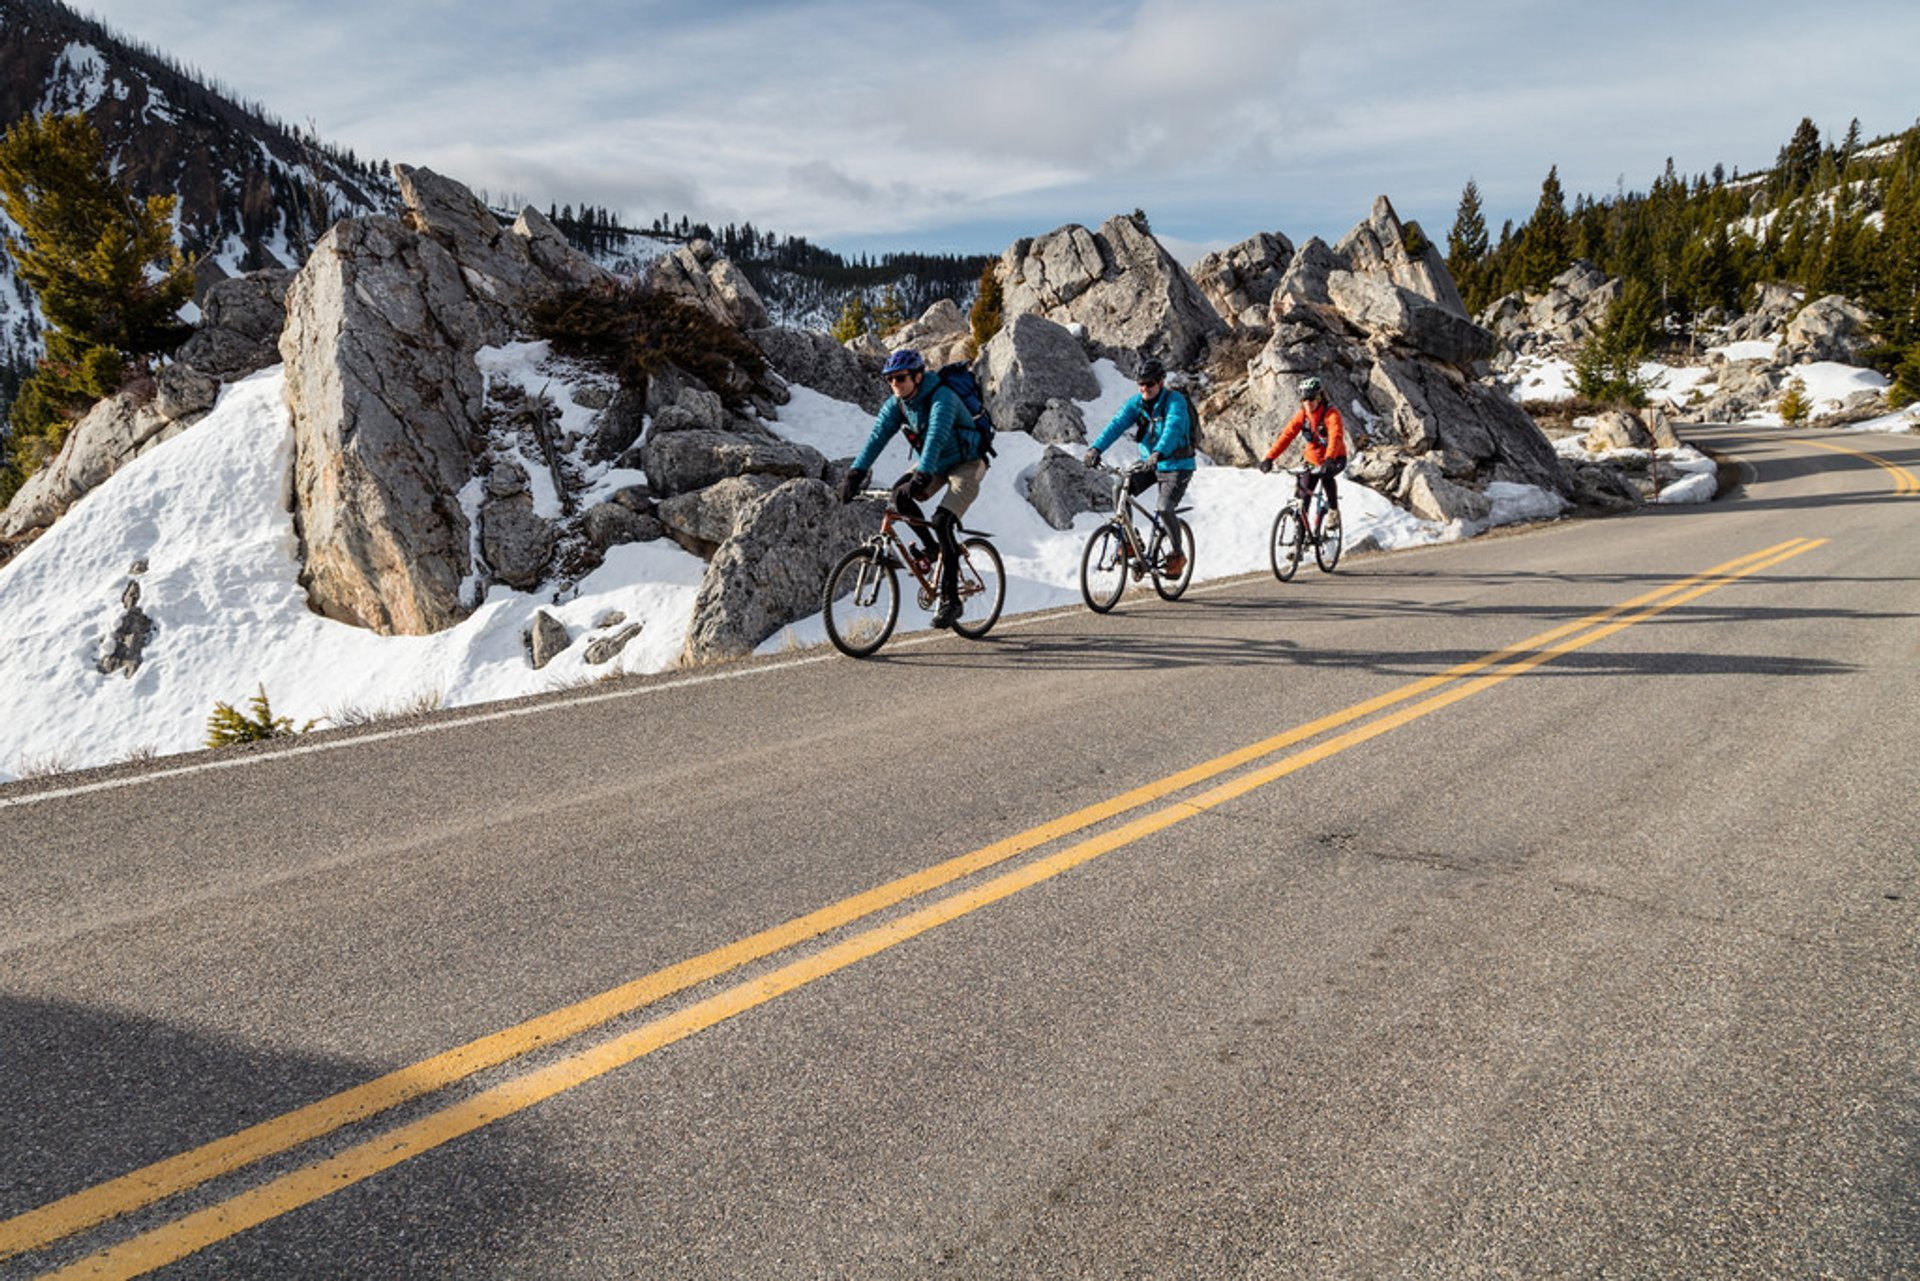 Spring biking with bear spray in The Hoodoos 2020